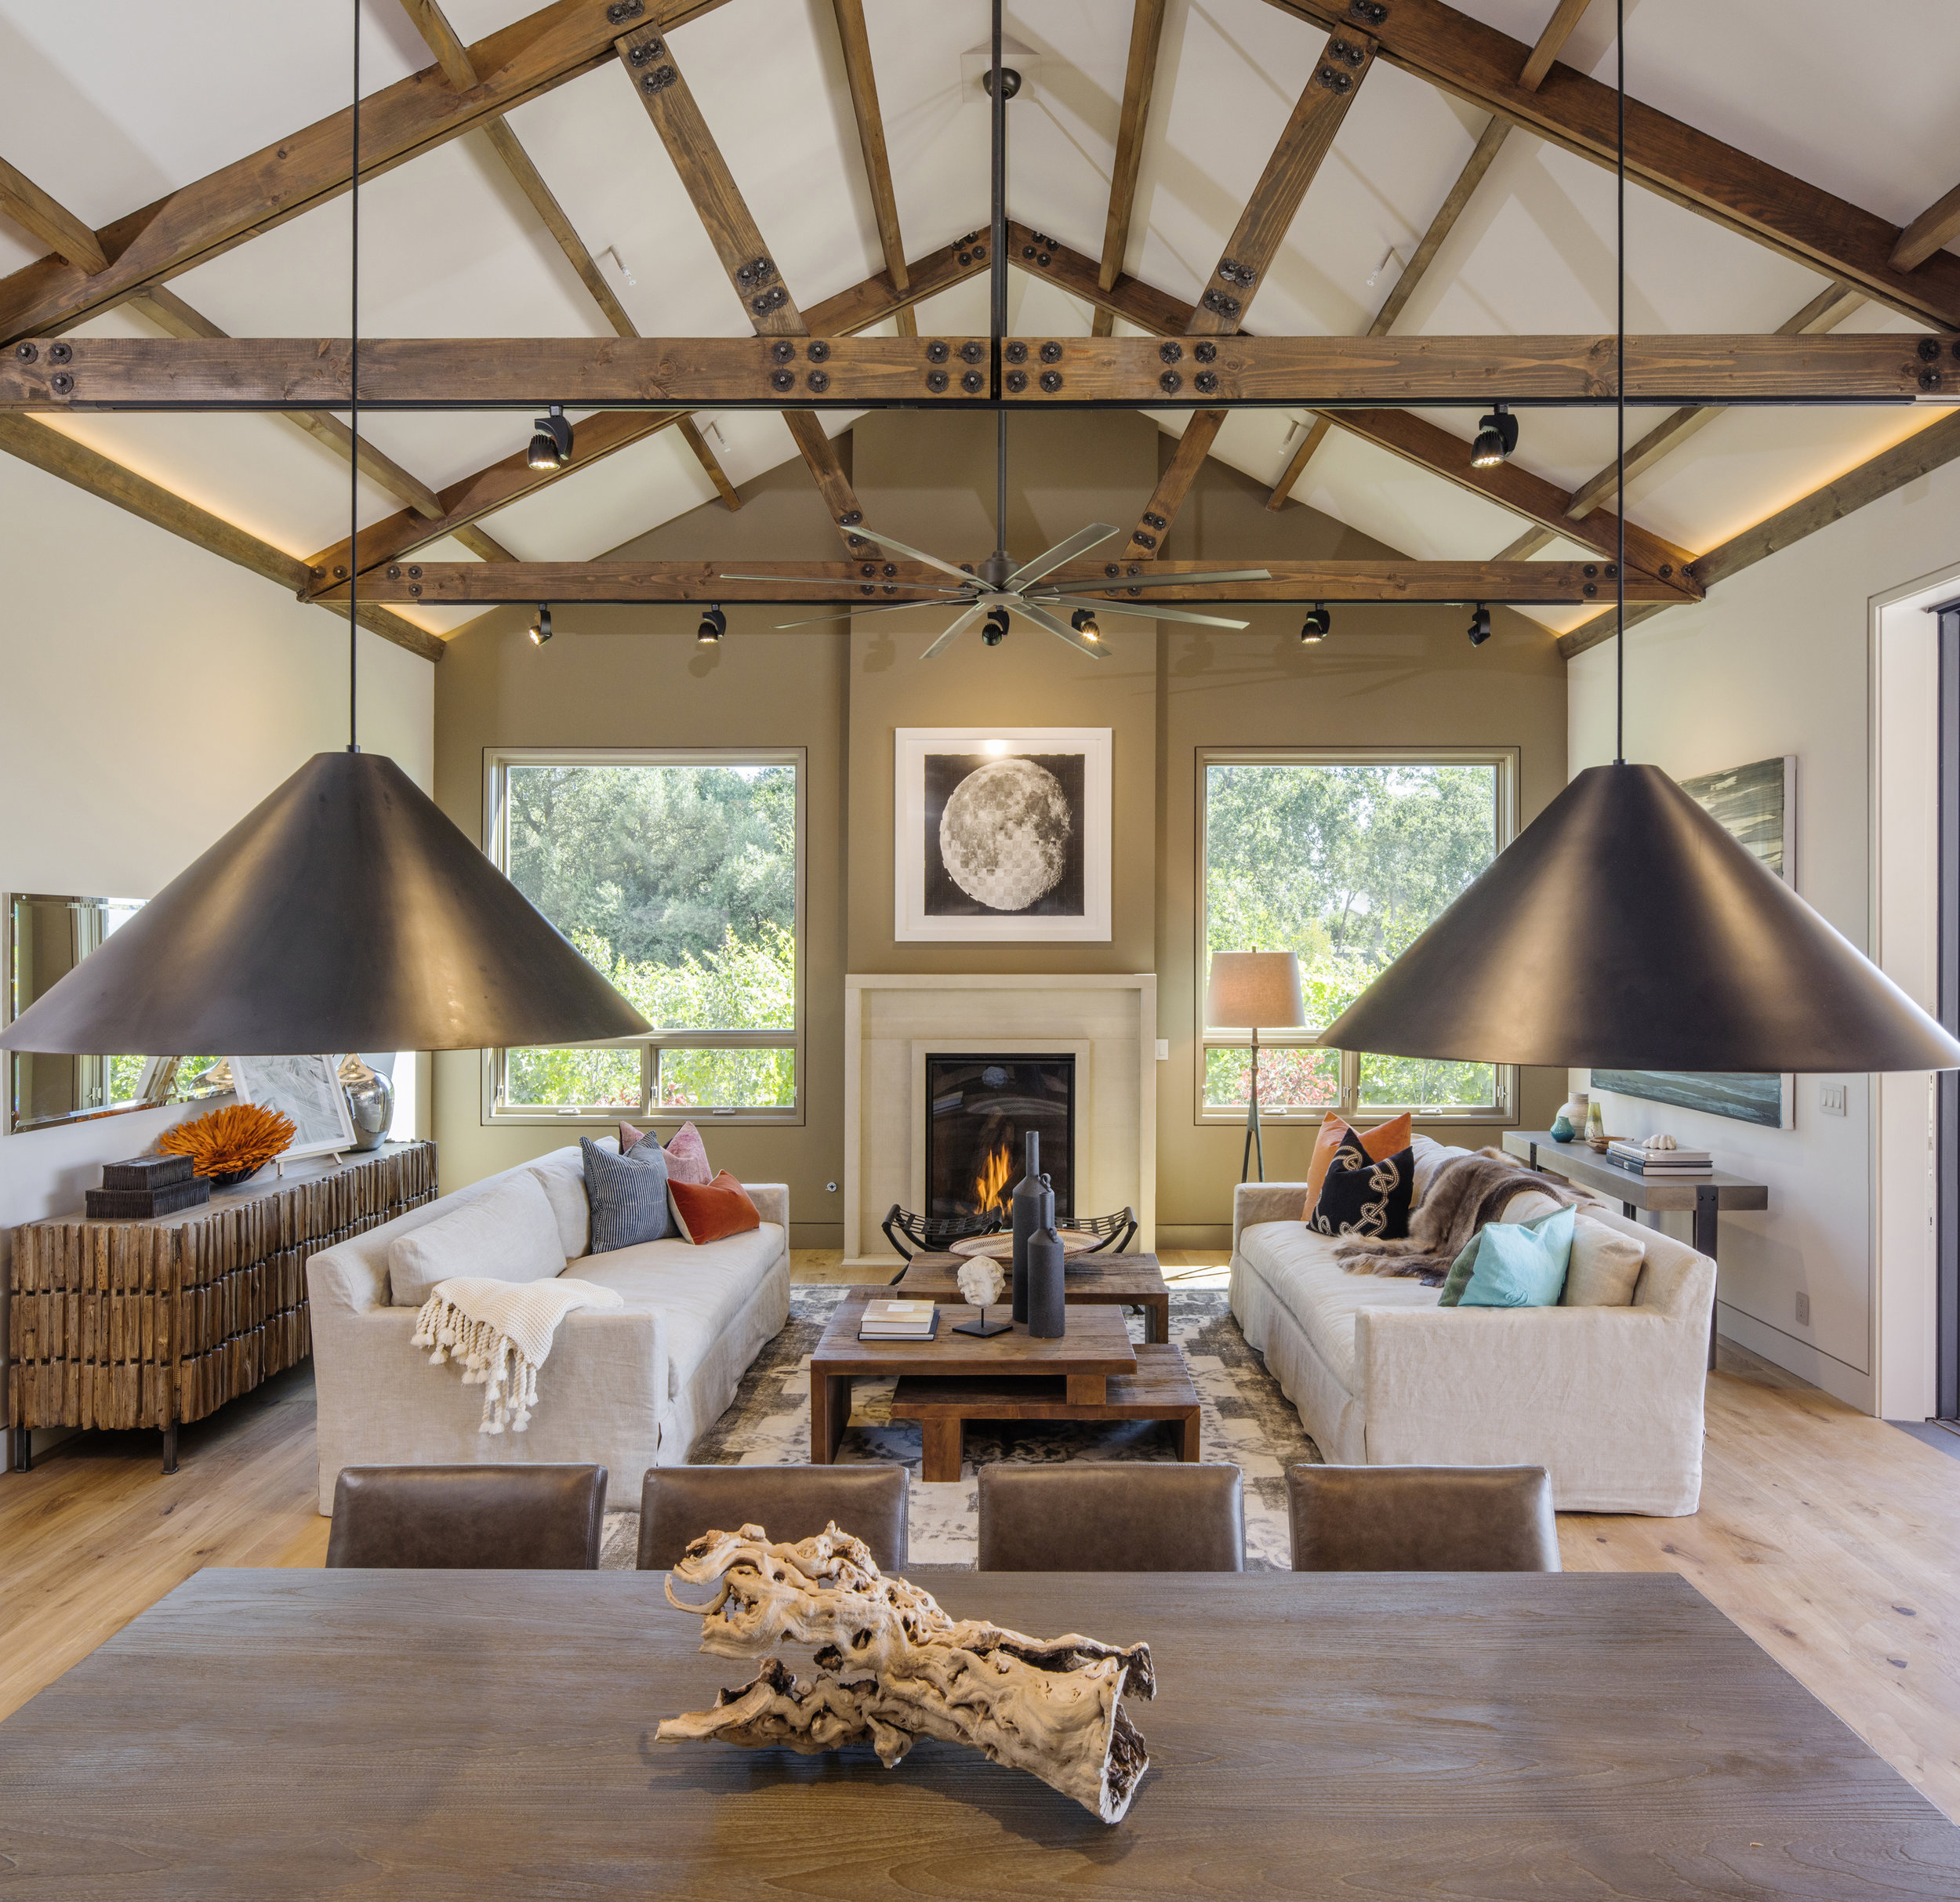 NEW CONSTRUCTION | VINEYARD SETTING    1617 Inglewood Ave, St. Helena  $4,900,000    VIEW DETAILS